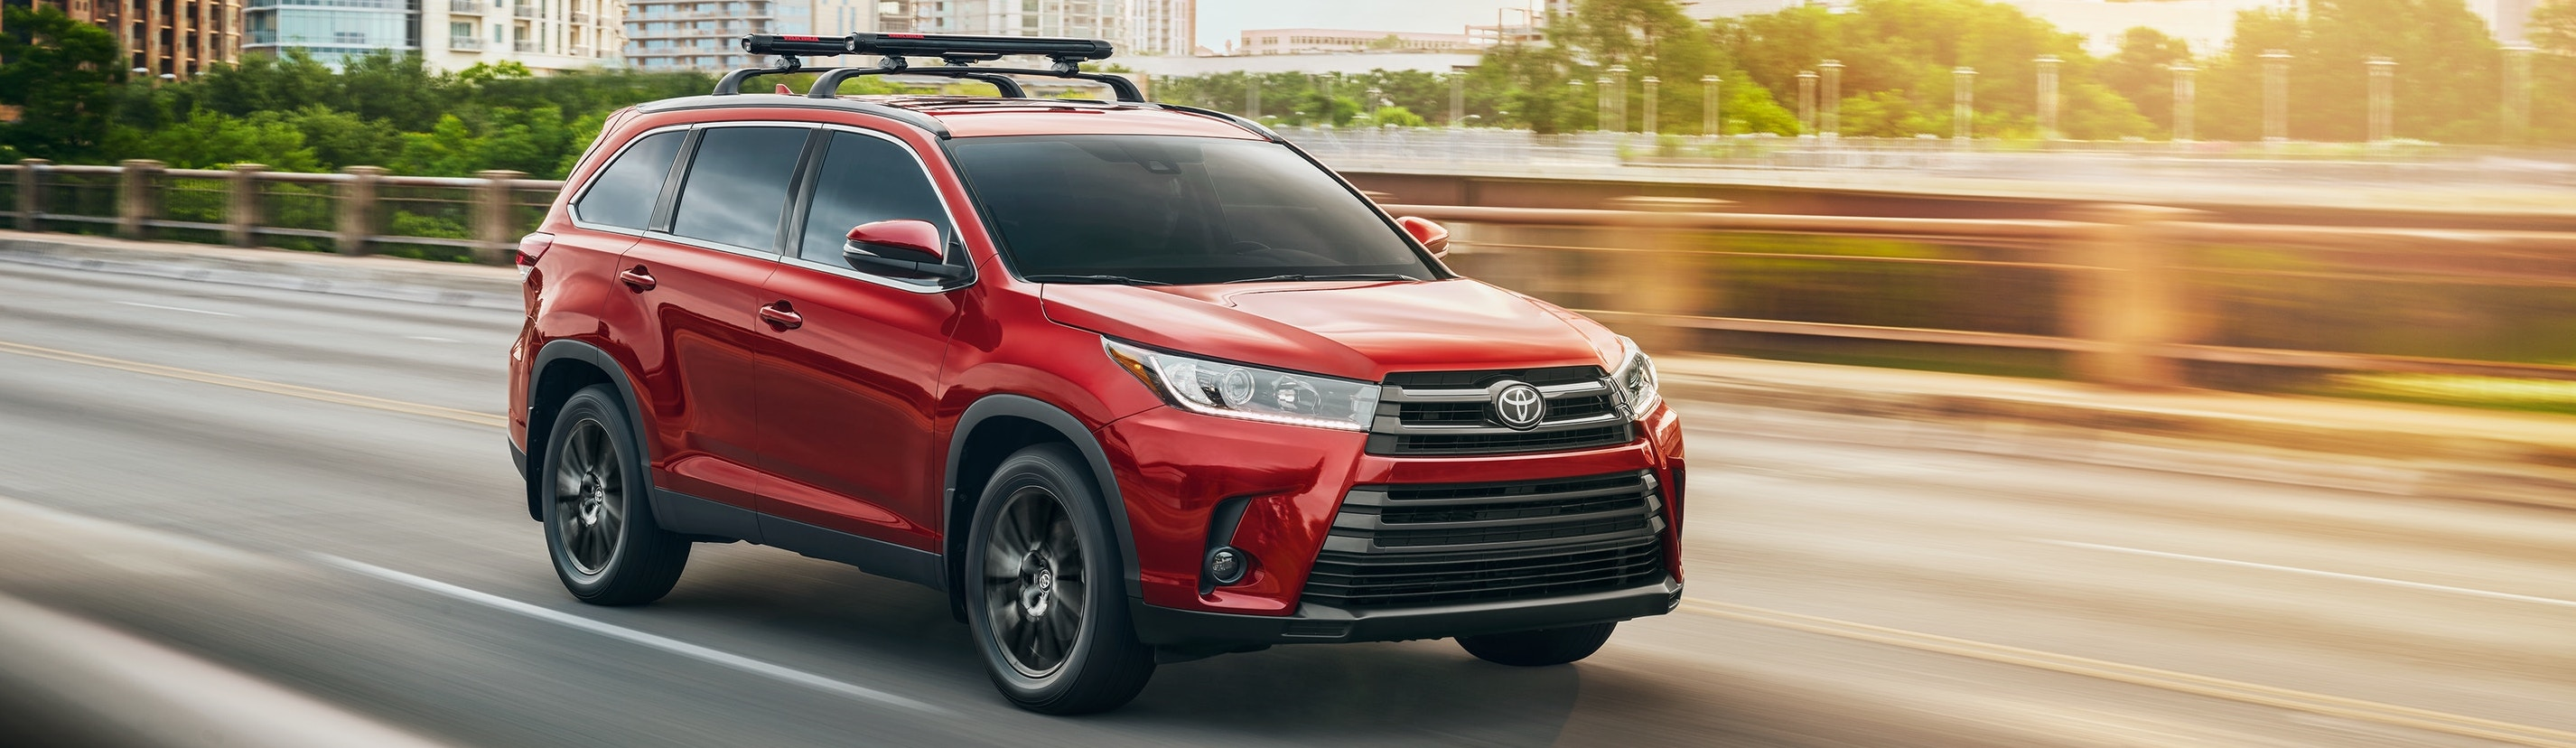 2019 Red Exterior Highlander On Road at Toyota of El Cajon